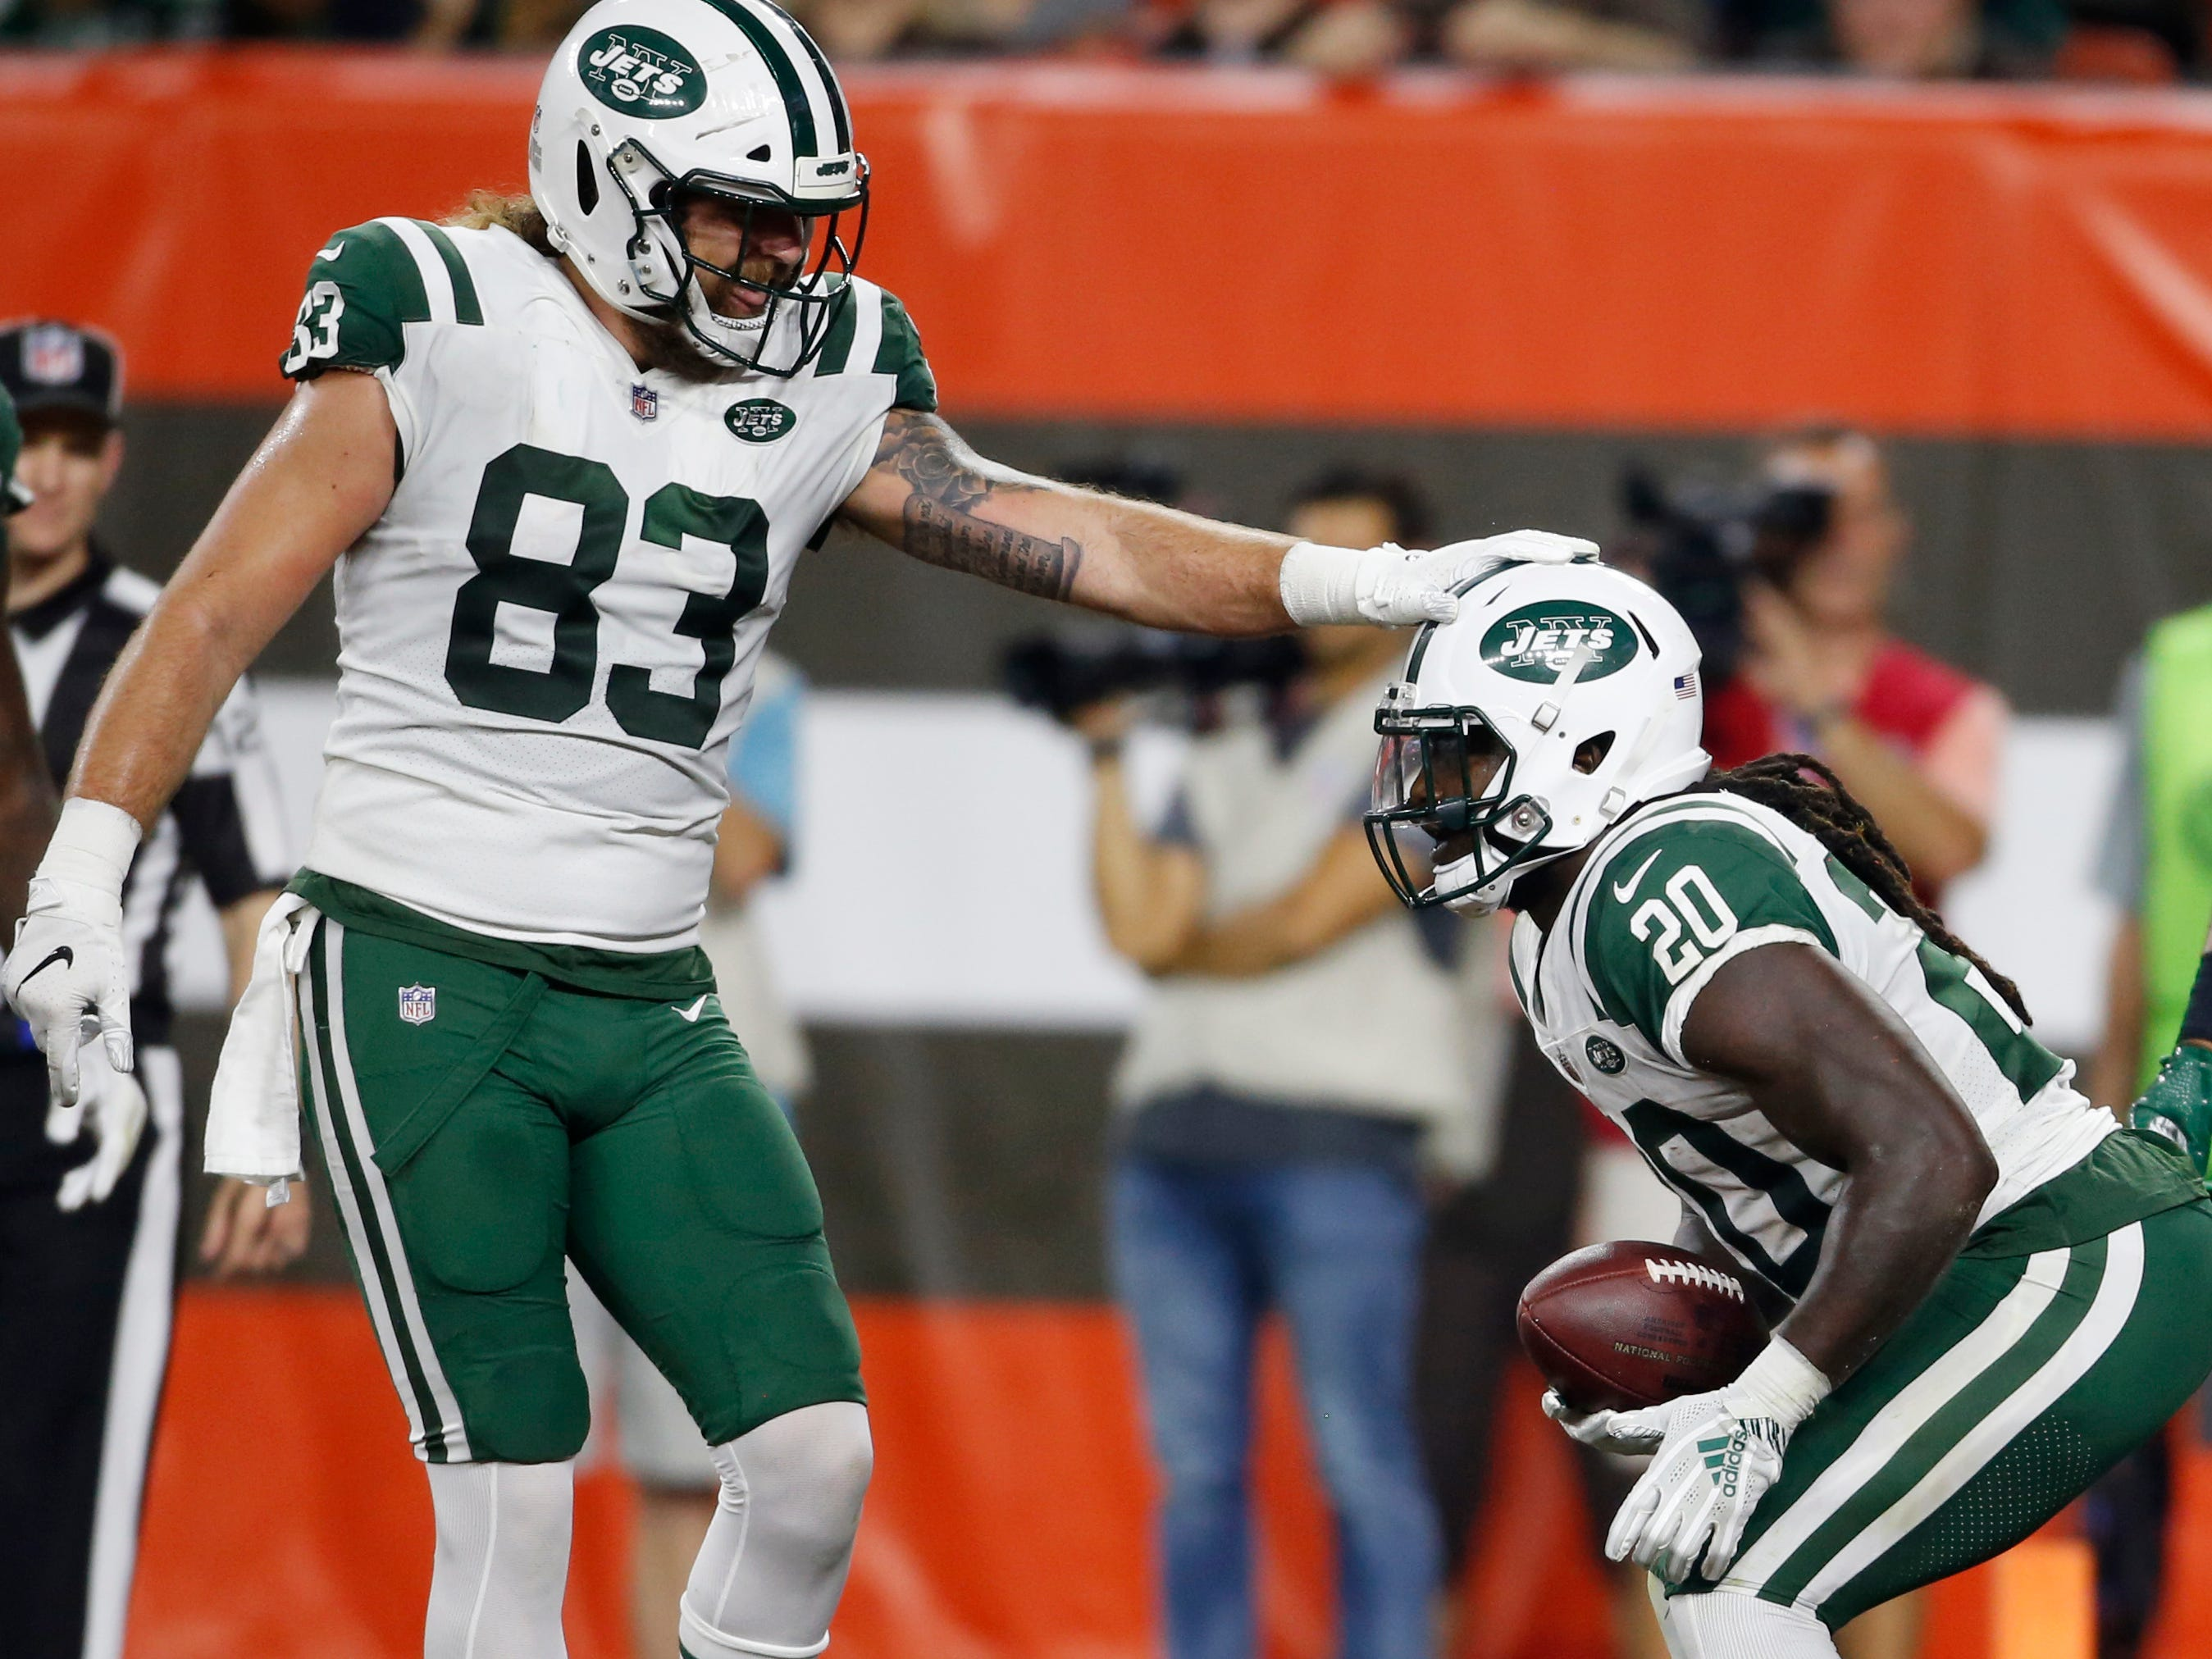 New York Jets tight end Eric Tomlinson congratulates running back Isaiah Crowell after Crowell ran for a 2-yard TD.